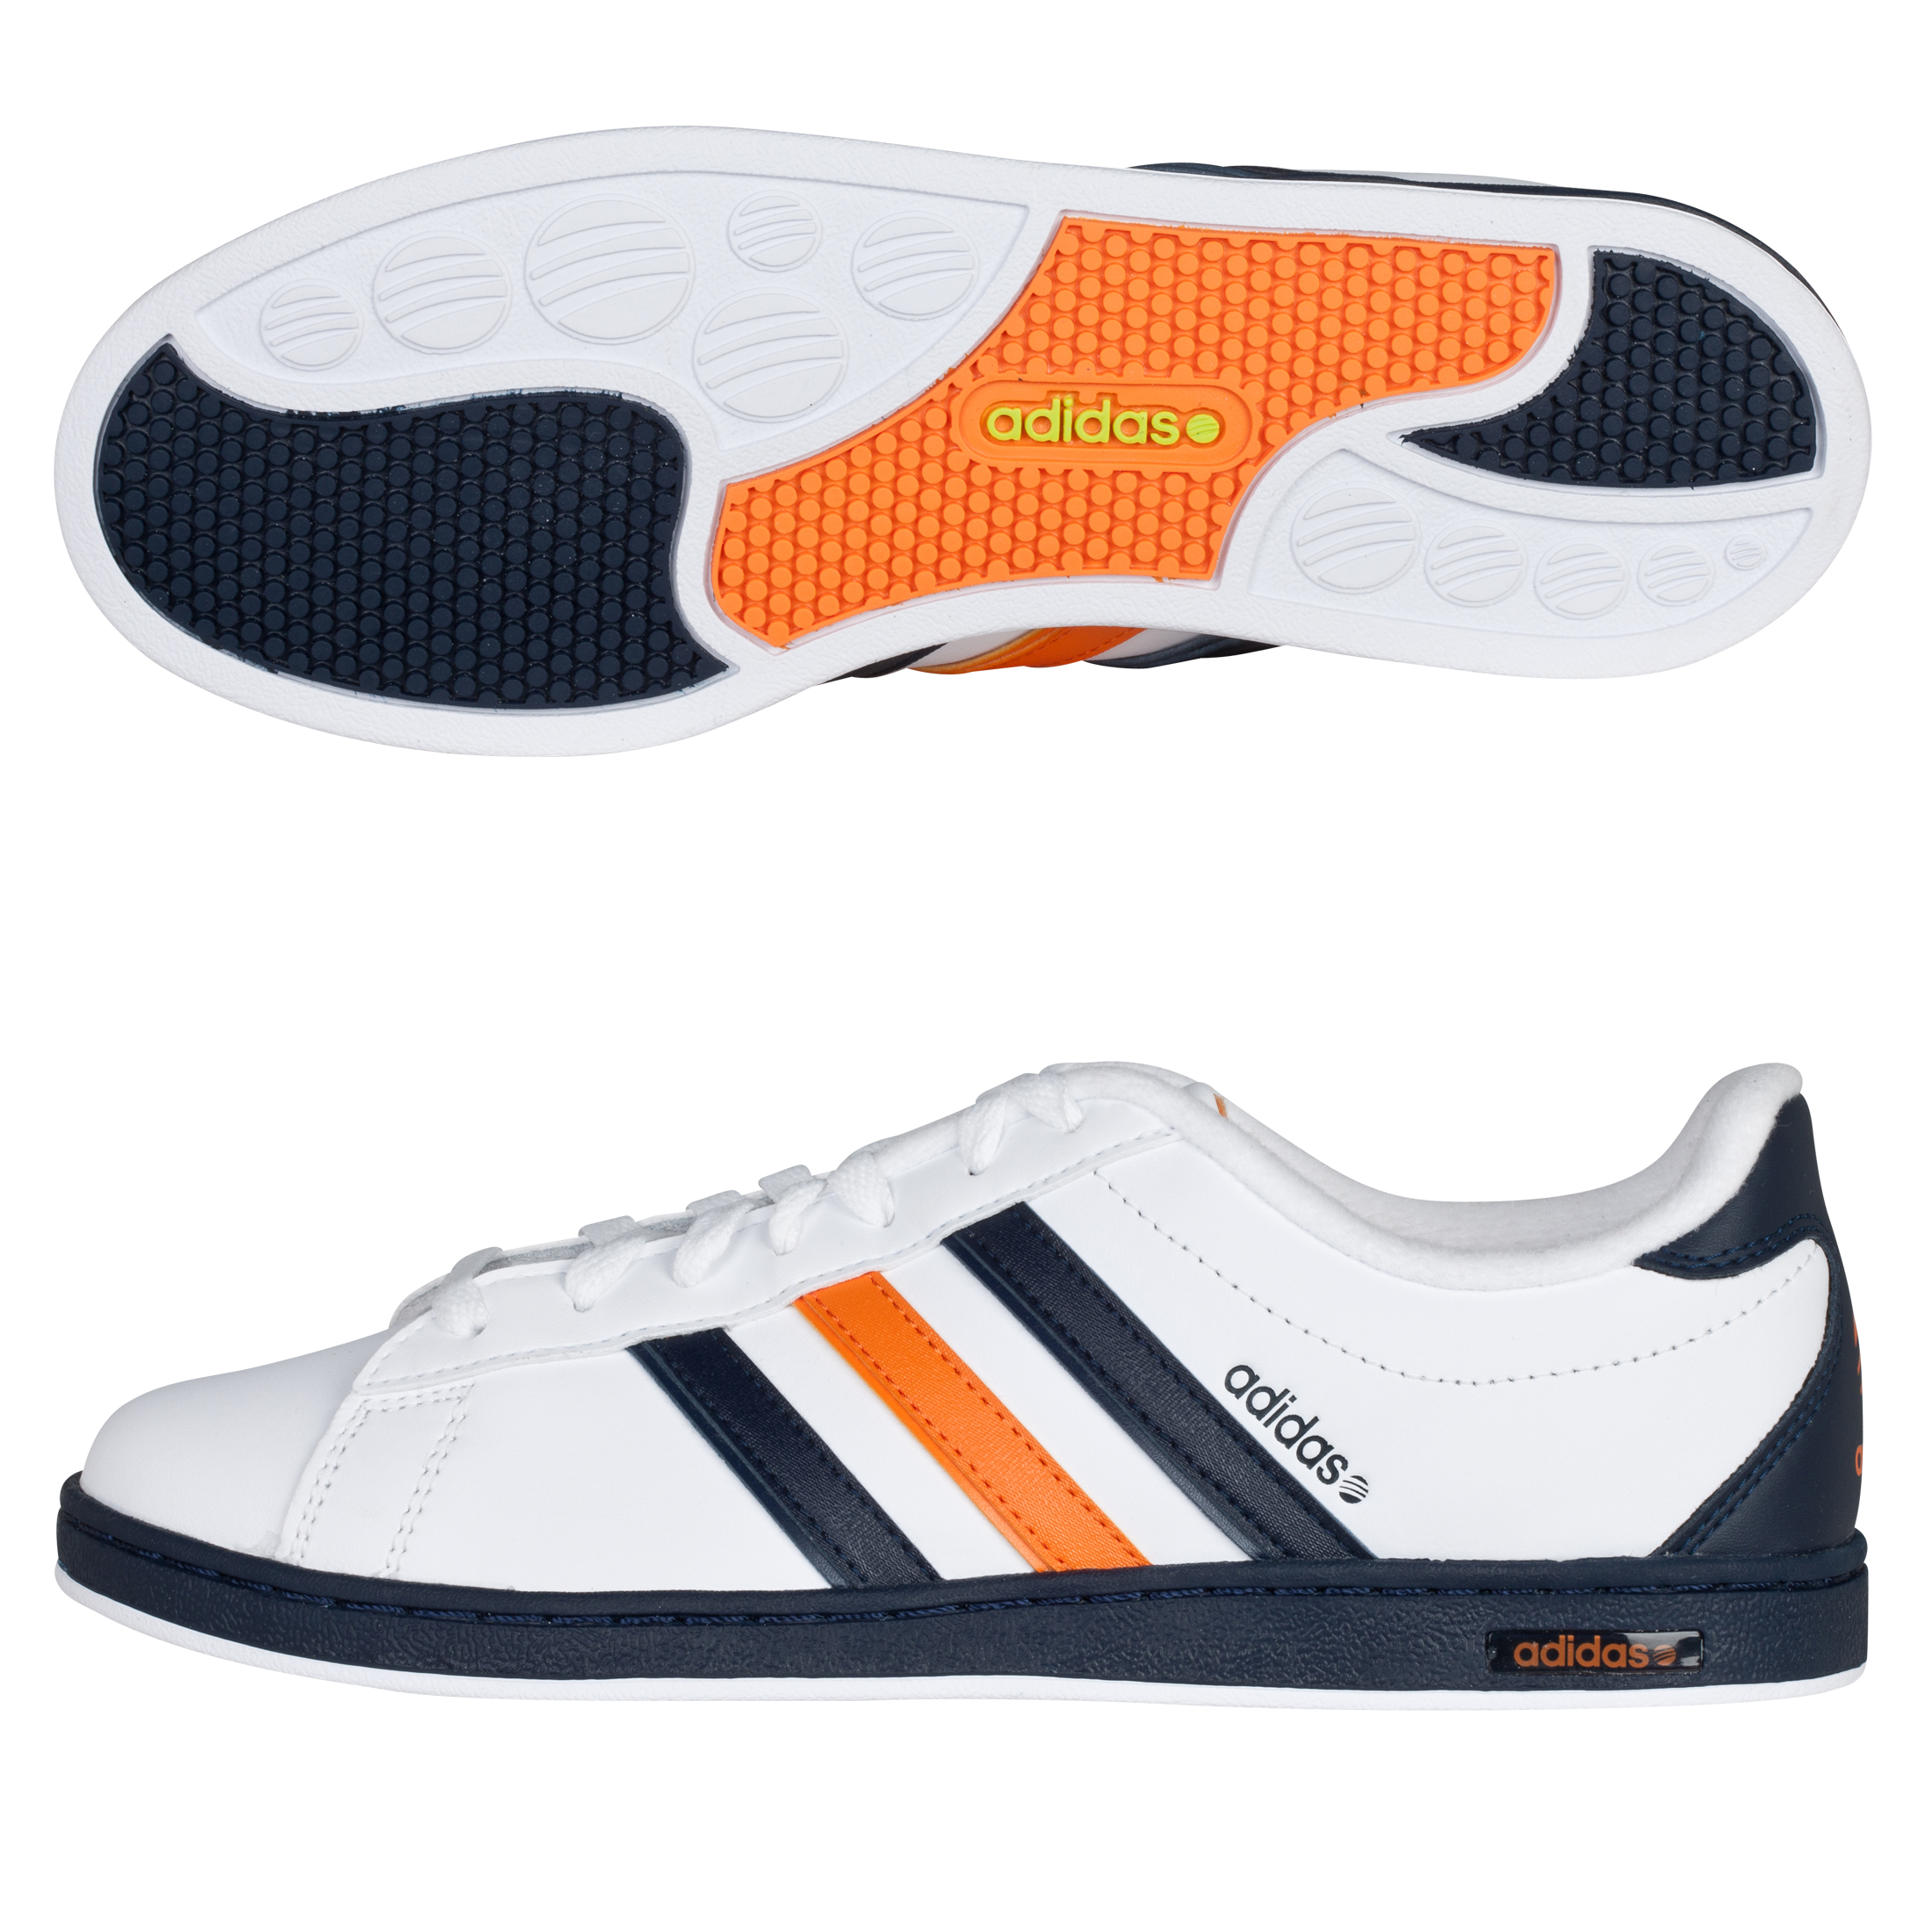 Adidas Derby Trainers - White Ftw / Dark Indigo / Super Orange S12